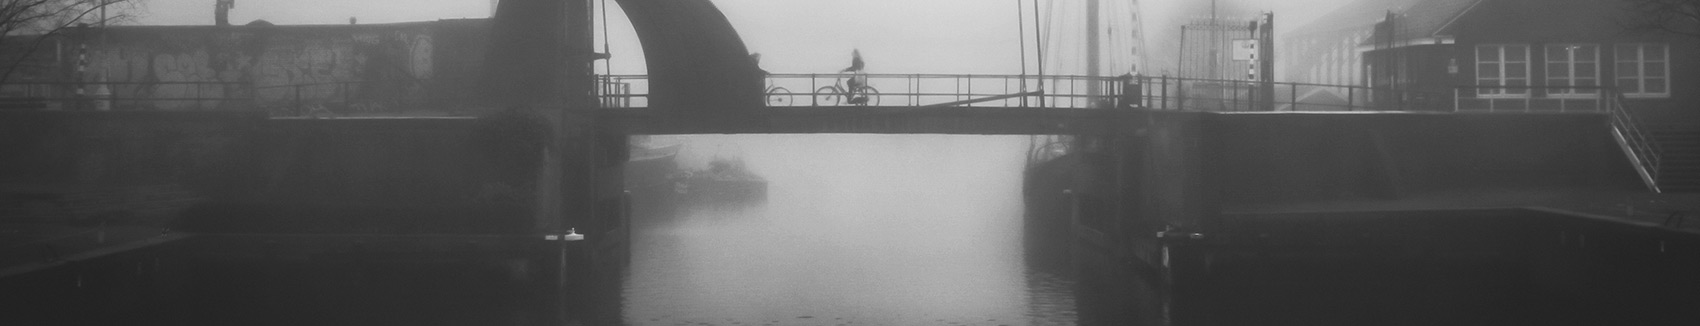 Fog Photography in Amsterdam